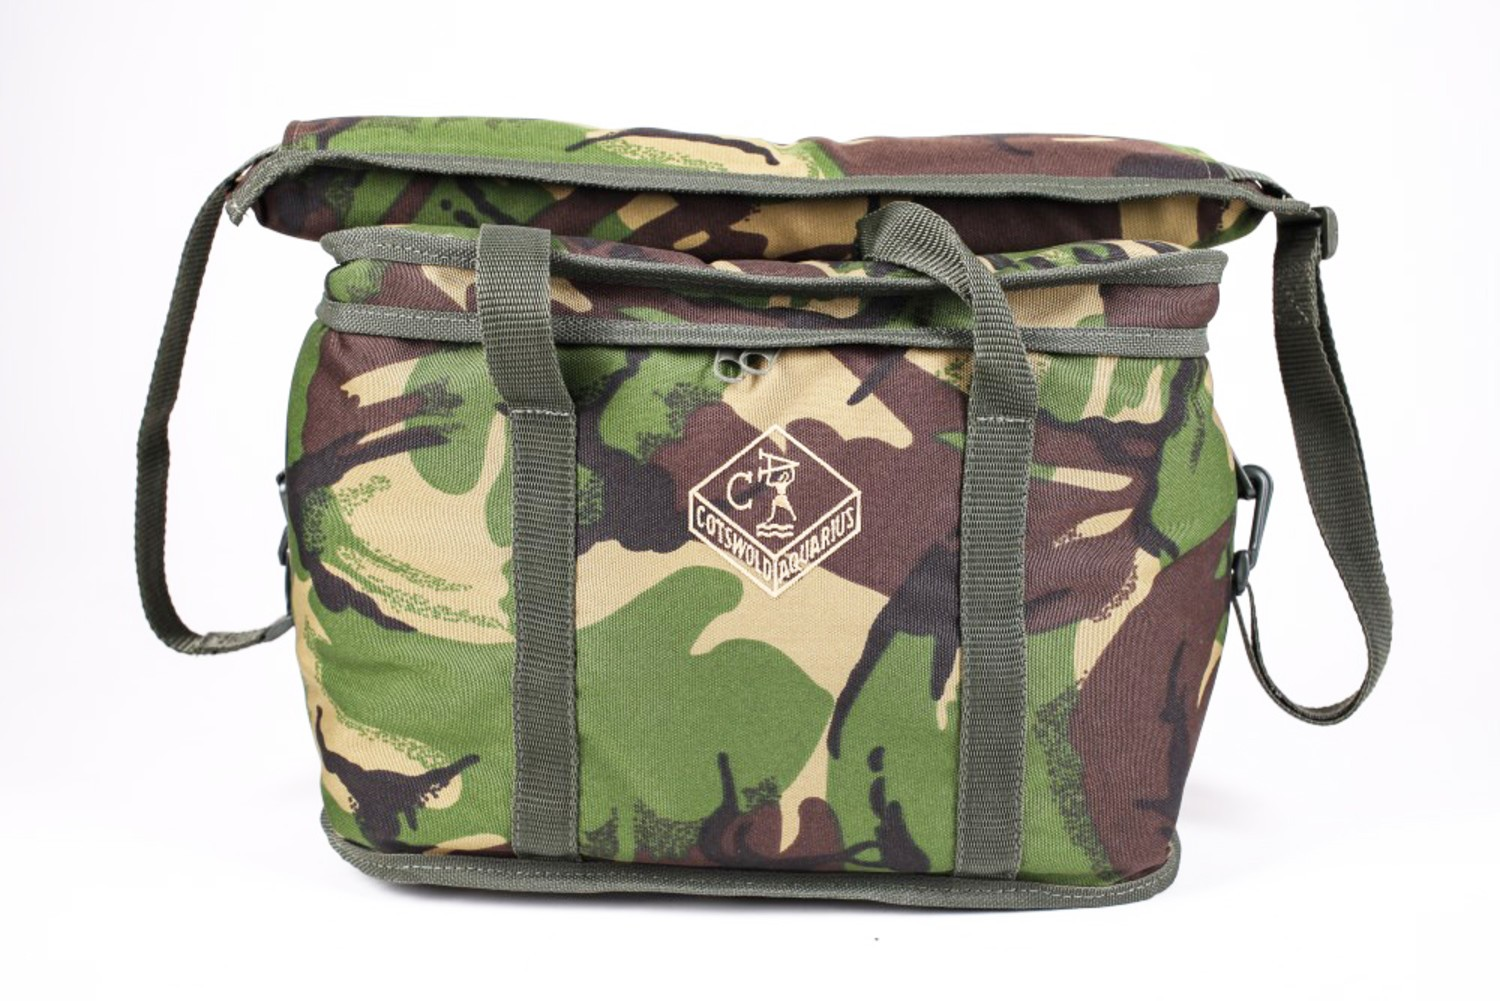 Cotswold Aquarius - Woodland Camo Deluxe Cool Bag